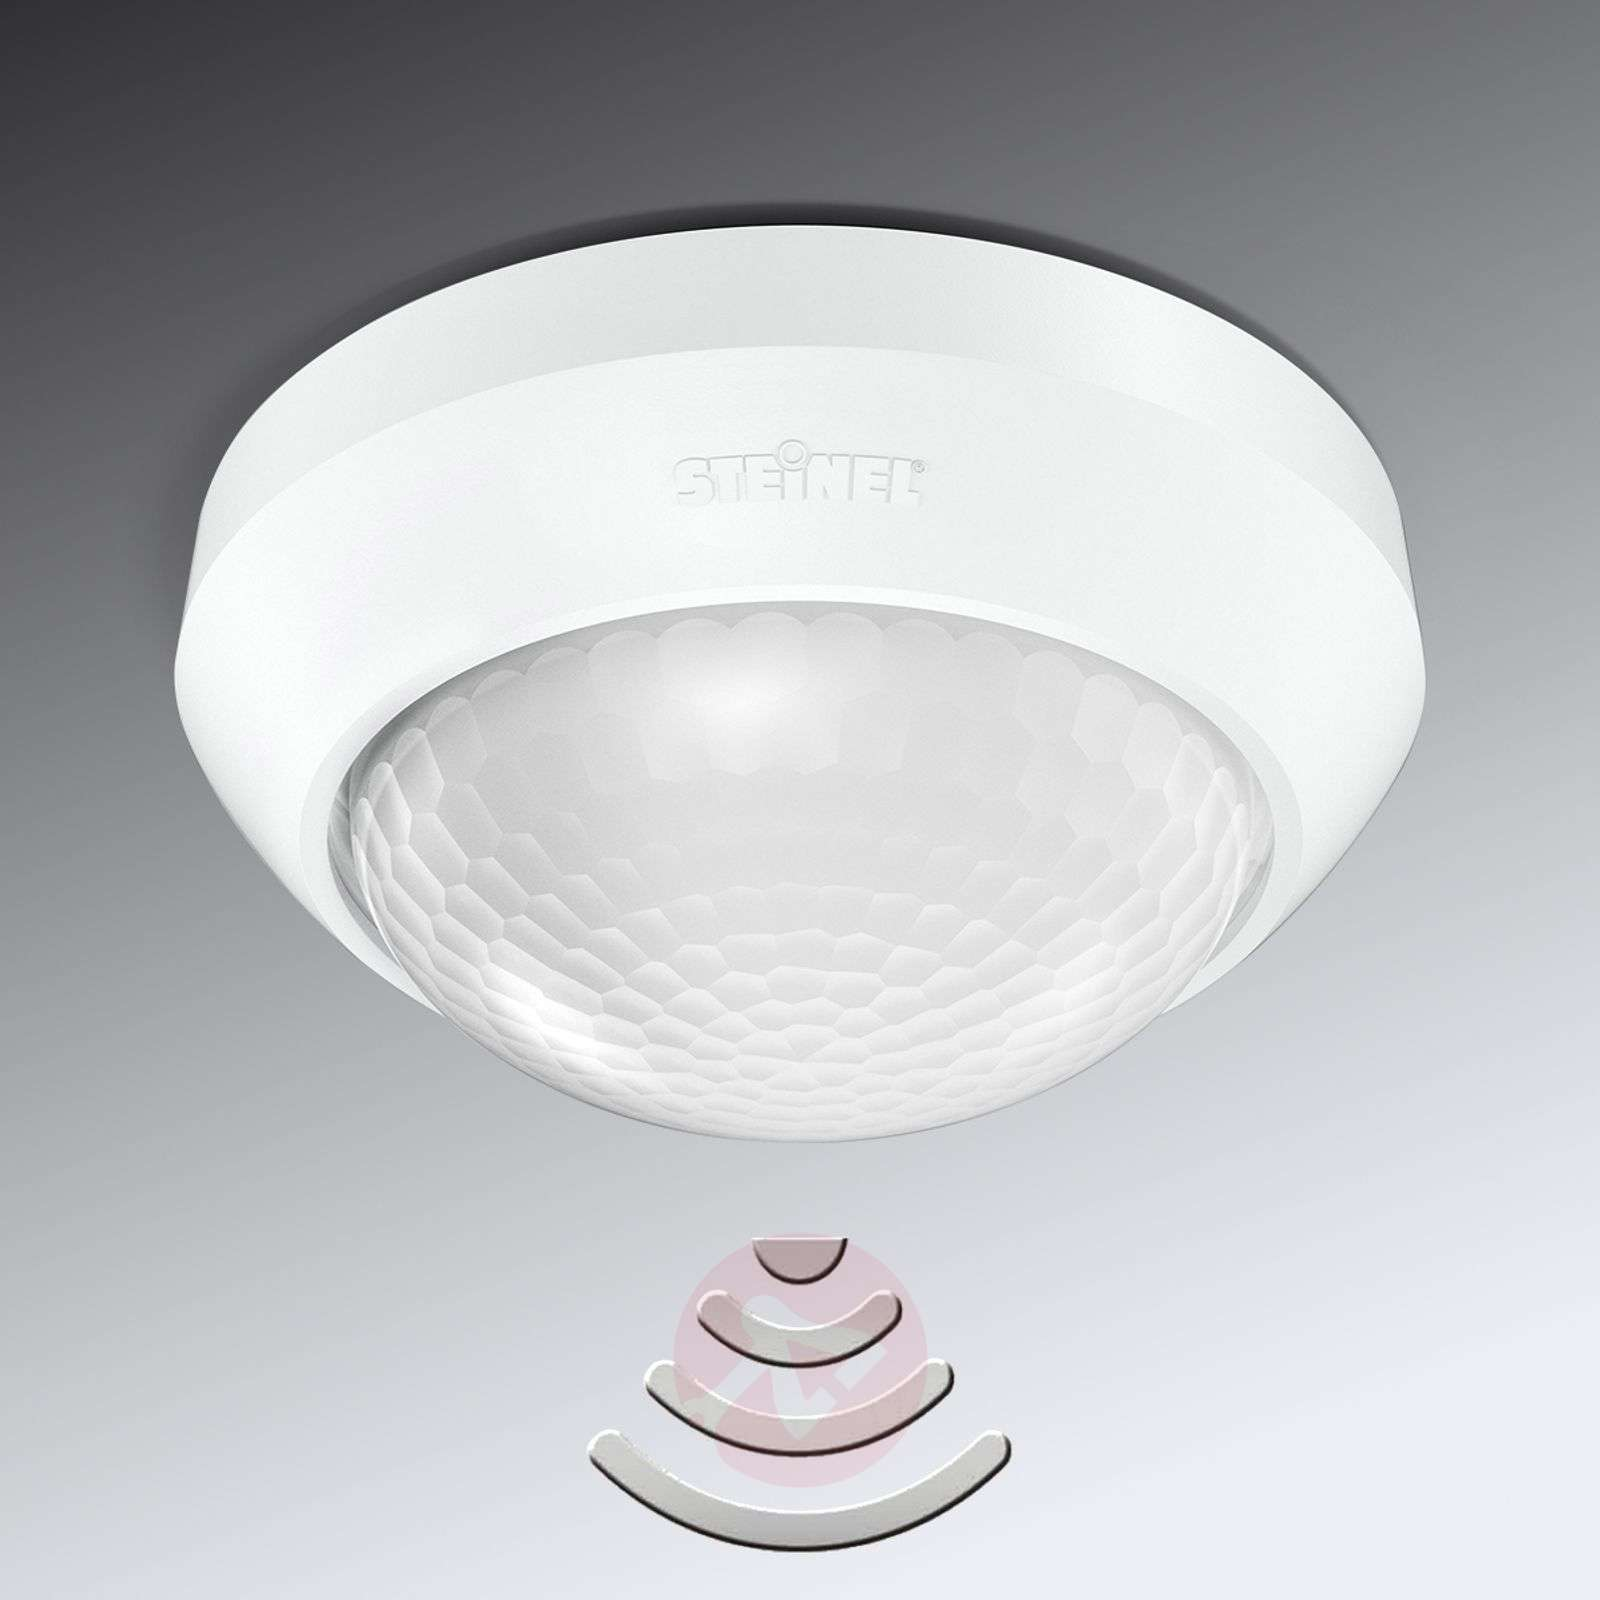 Motion detector IS 360-3 for indoors and outdoors-8505714-01